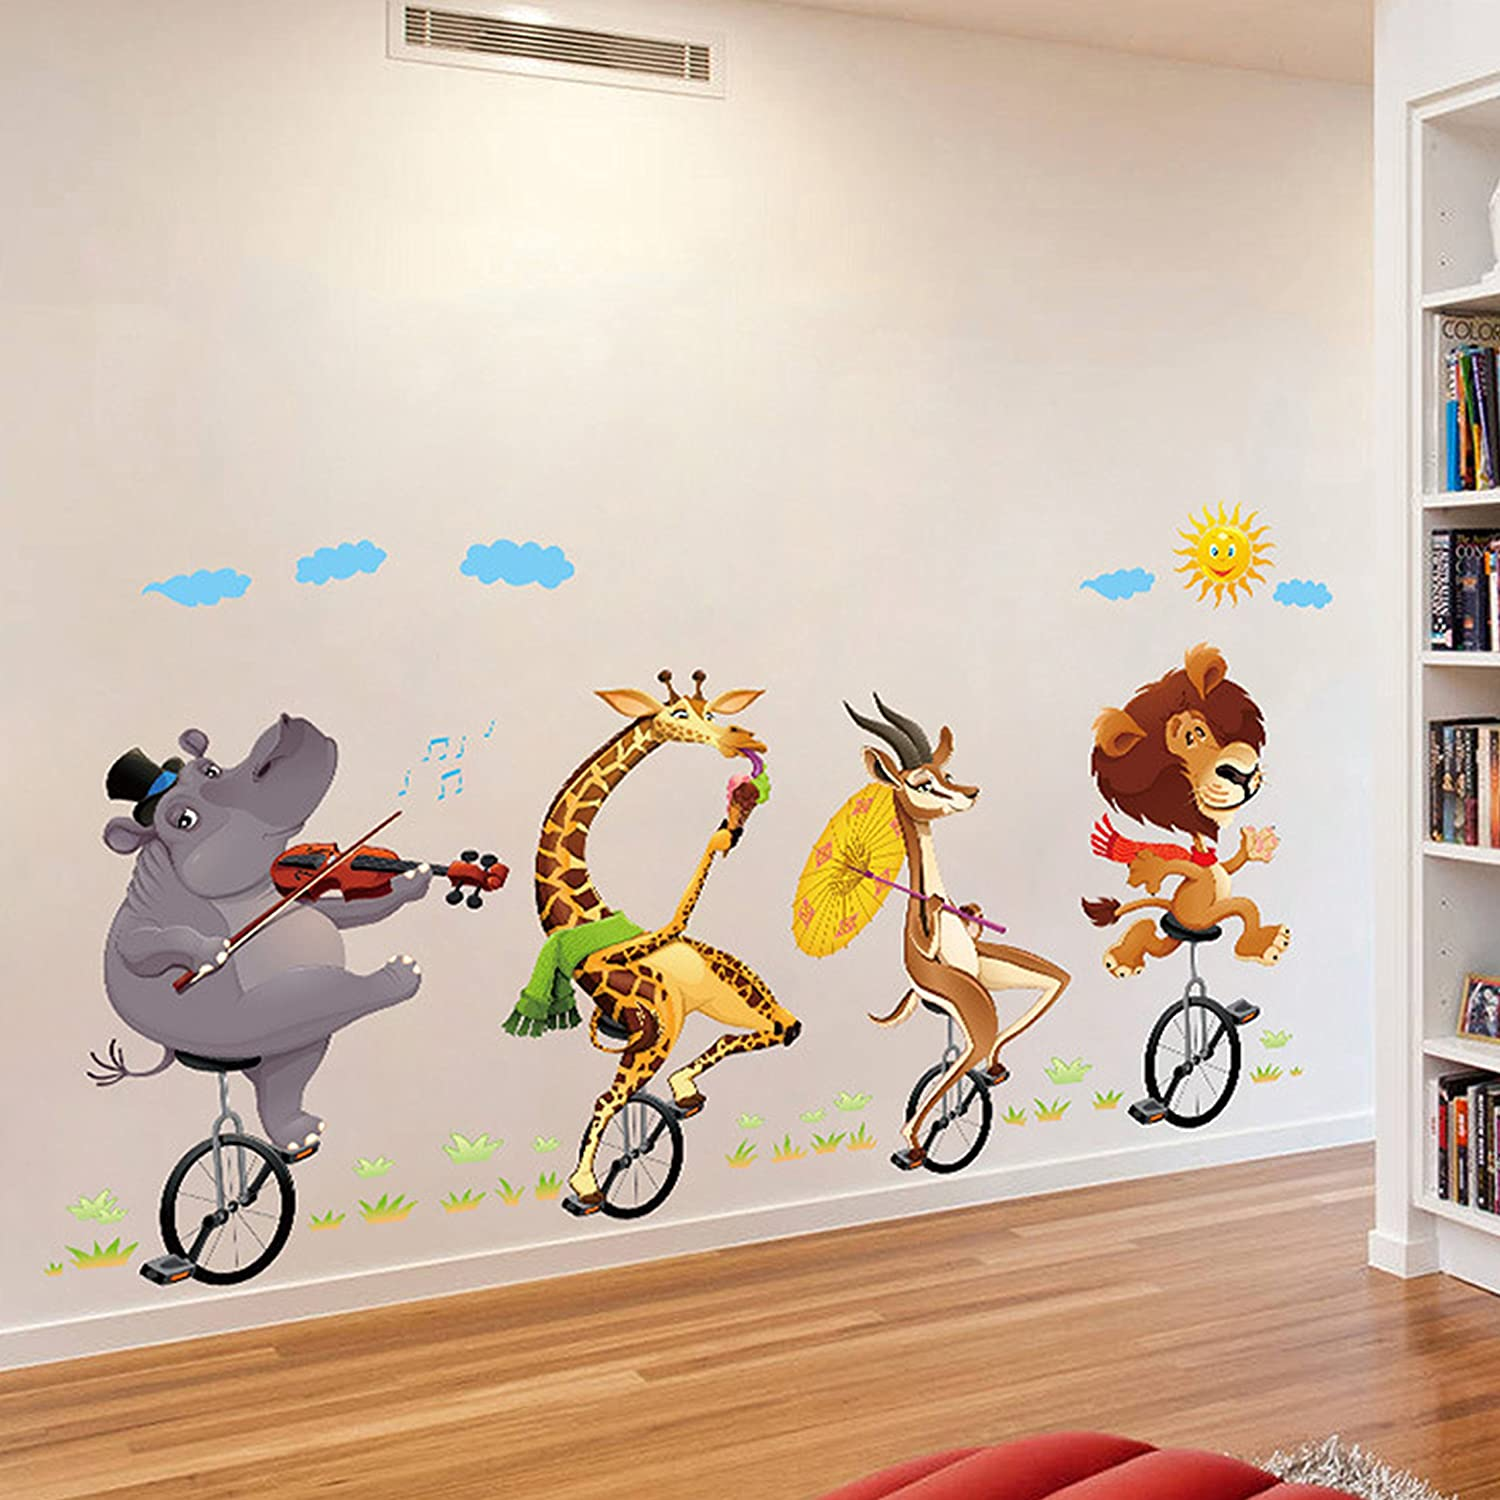 GoldenCart 3D Baby Cartoon Animal Wall Sticker for Kids, Children, Boys, Girls to decorate Bedroom, Nursery, Living Room, Hall, Family lounge, Play School, Home, Office, Cafe or Restaurant (PVC Vinyl, 86cm x 76cm Finished Size on Wall, Self-adhesive &